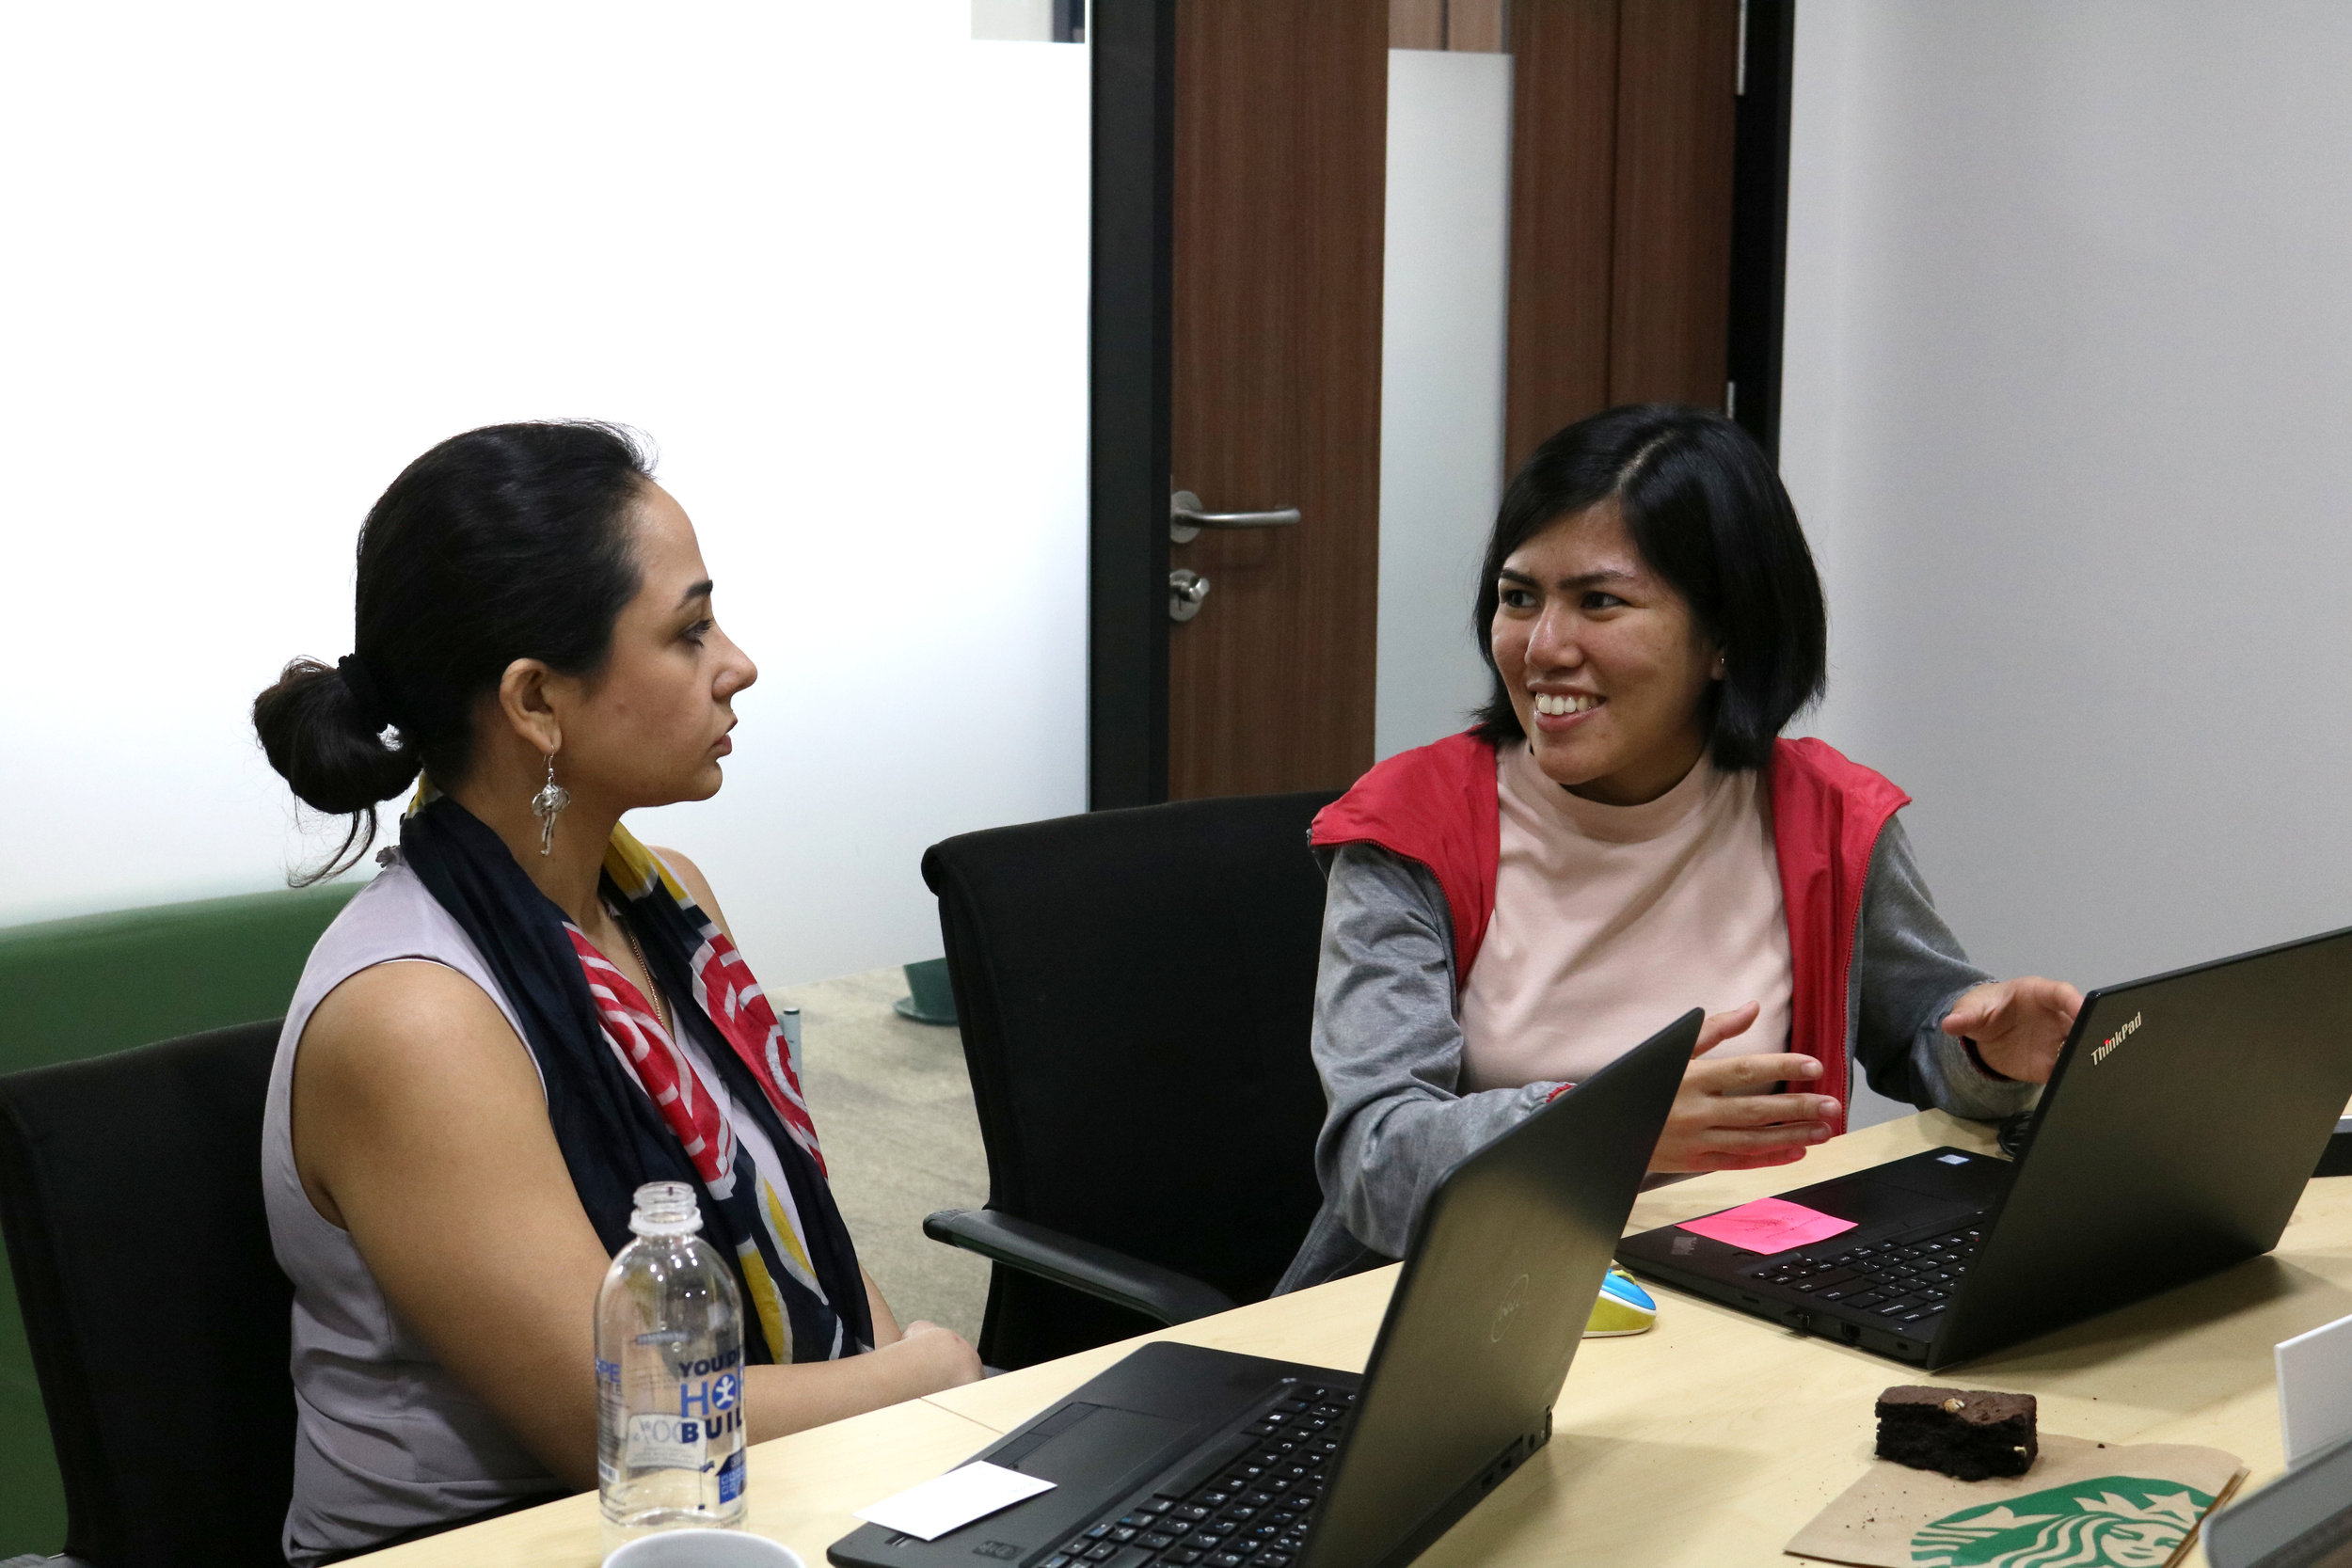 Carla Manalo, one of the founders of Hiraya Water, during the Impact Management Session at the Social Impact Accelerator with Rabayl Mirza of BcTA